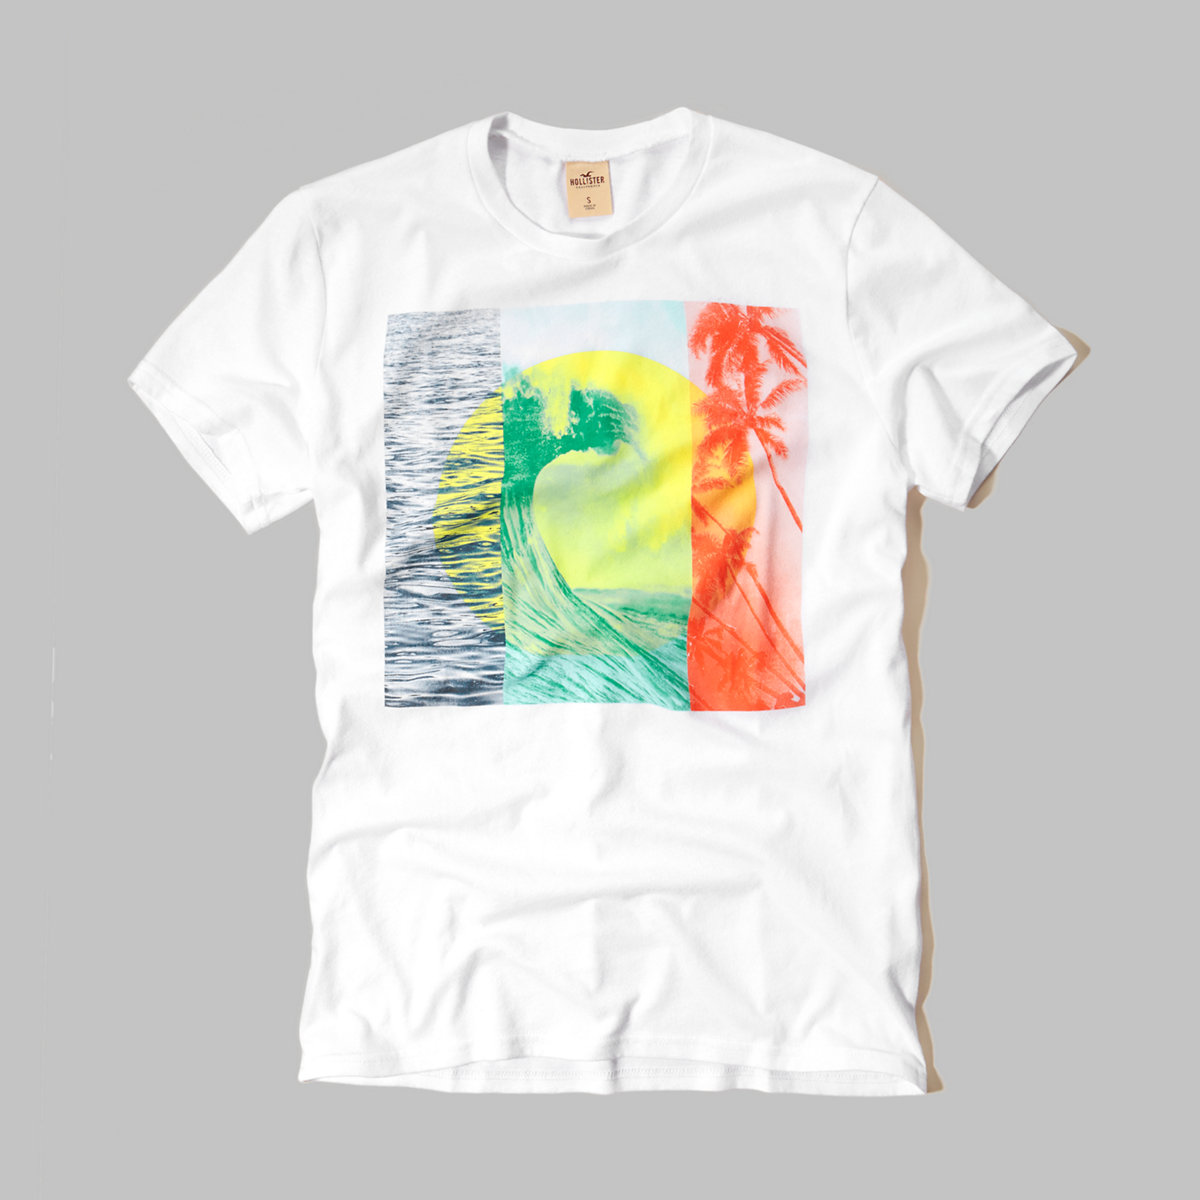 Classic So Cal Graphic T-Shirt